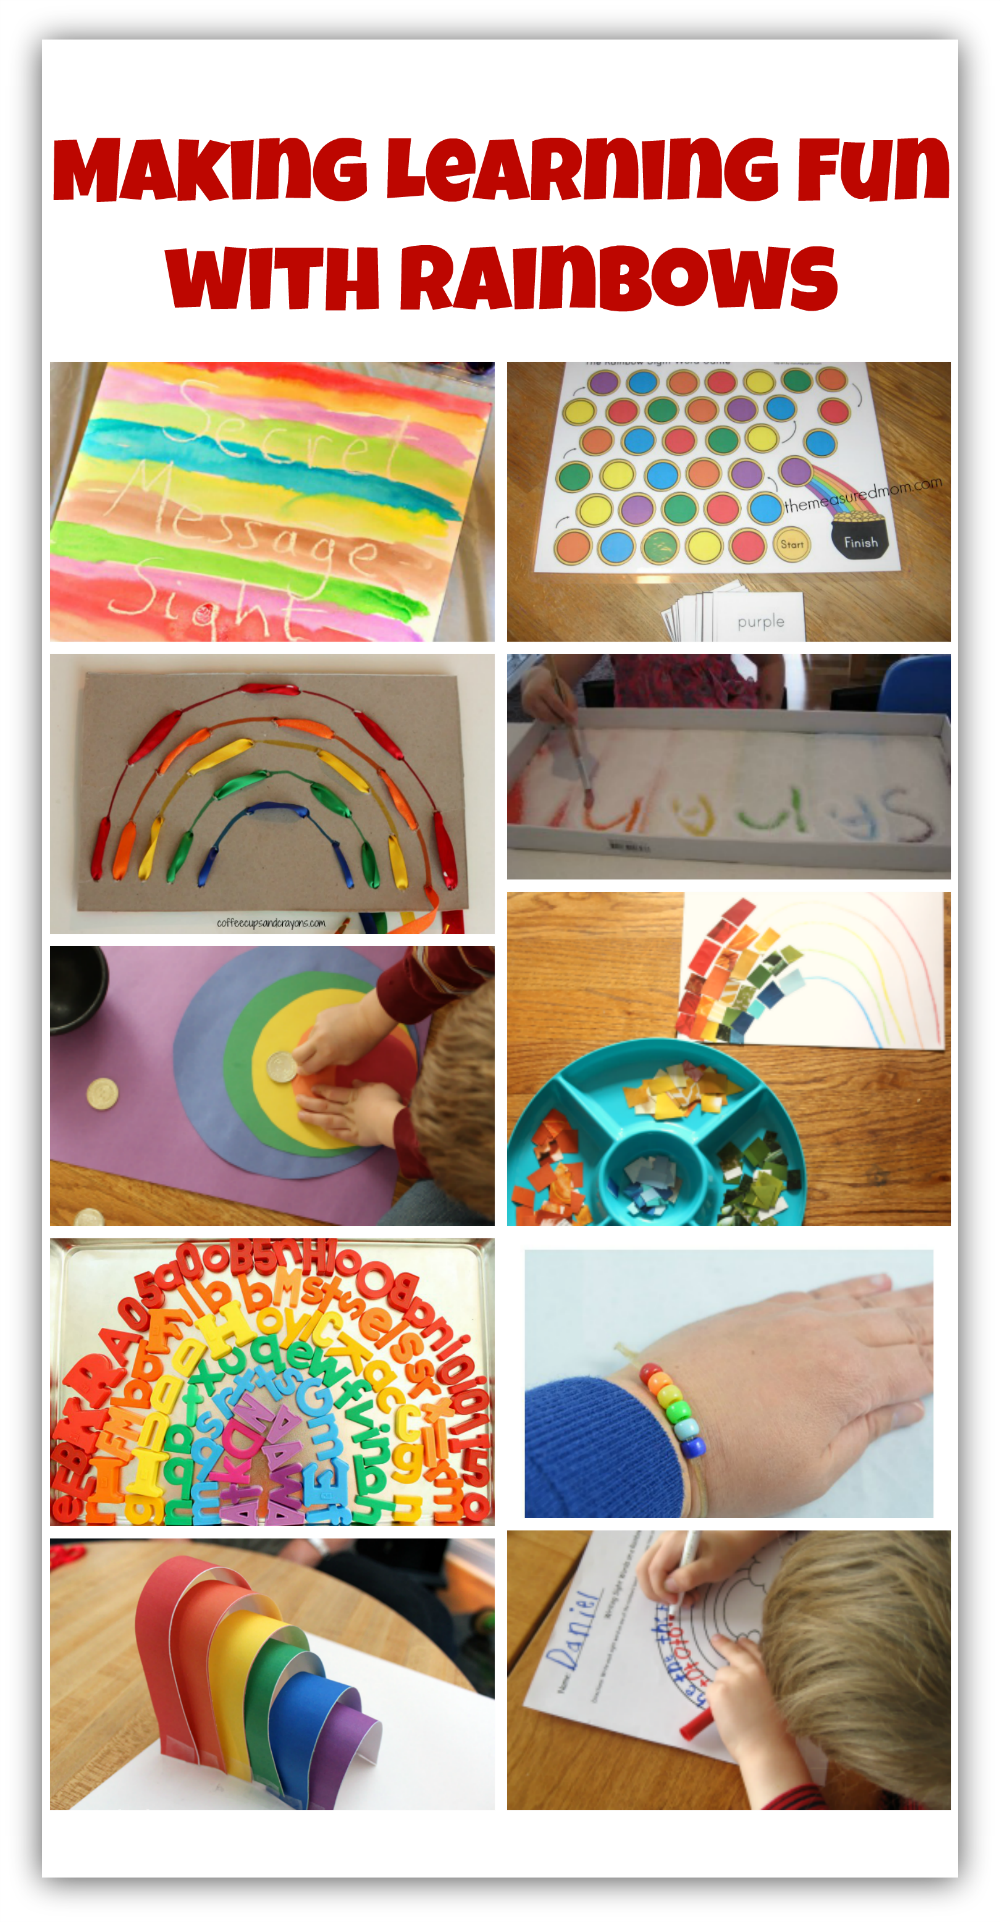 Making Learning Fun with Rainbows (title)